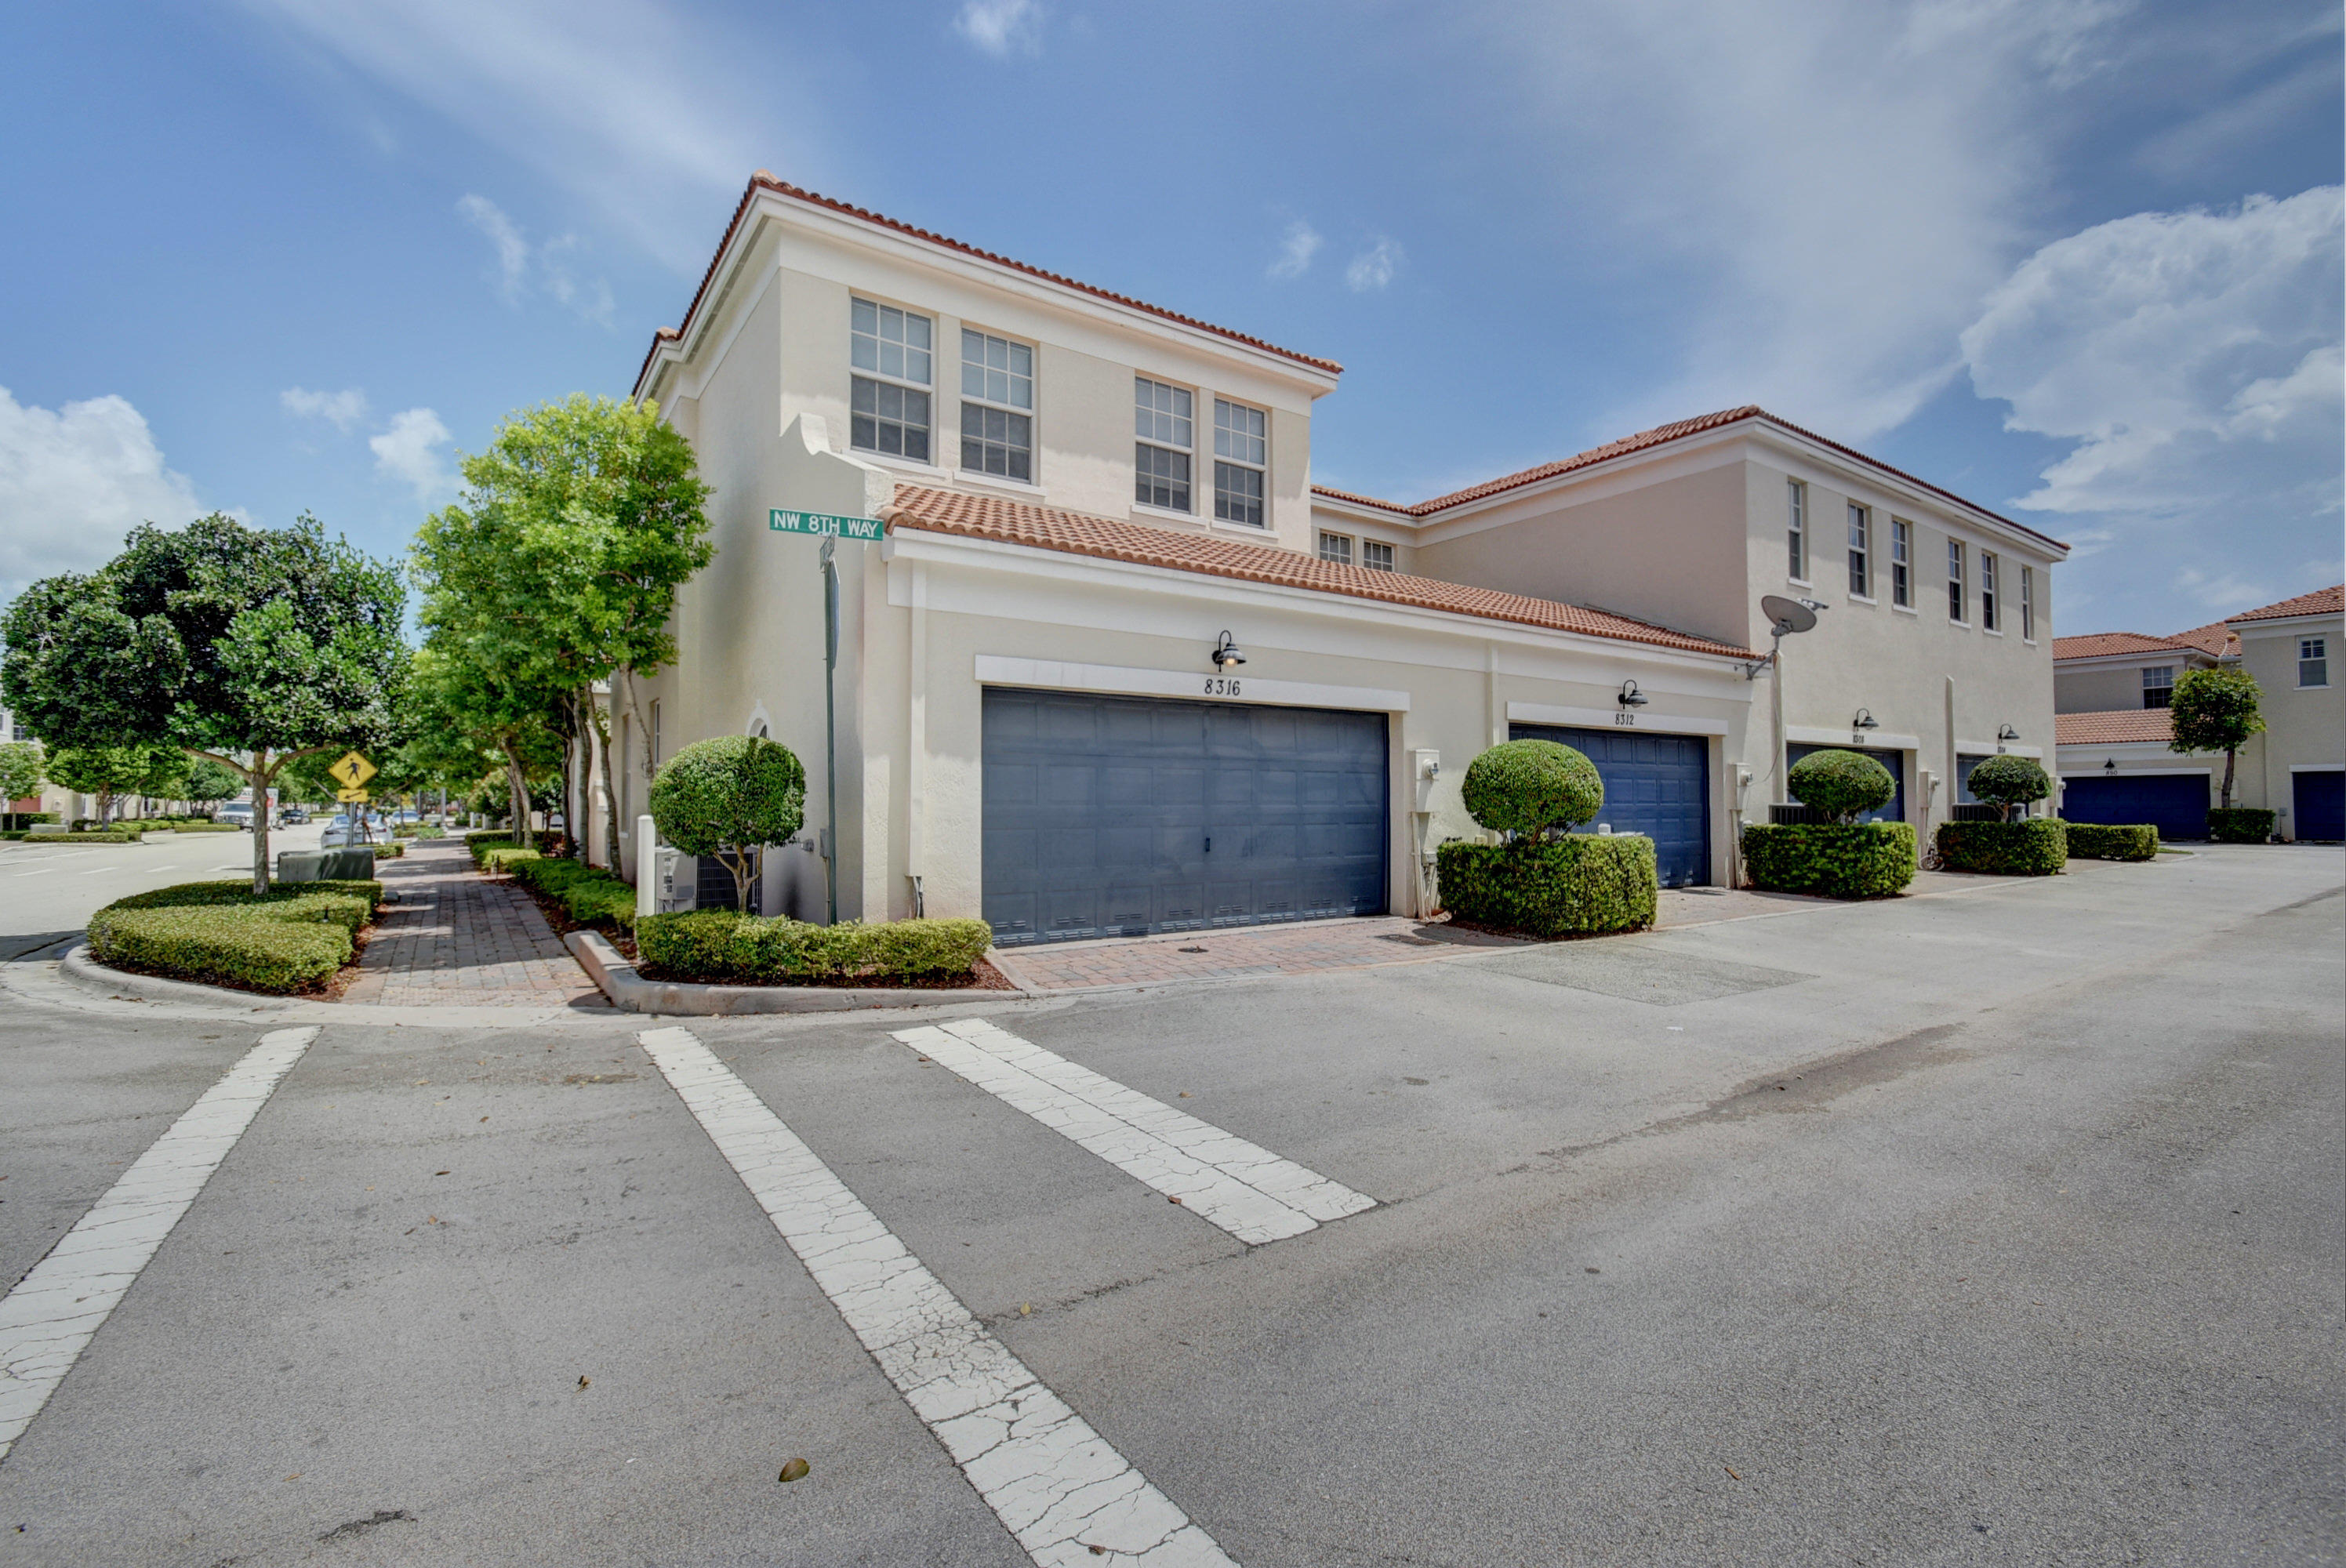 8316 Nw 8th Way Boca Raton, FL 33487